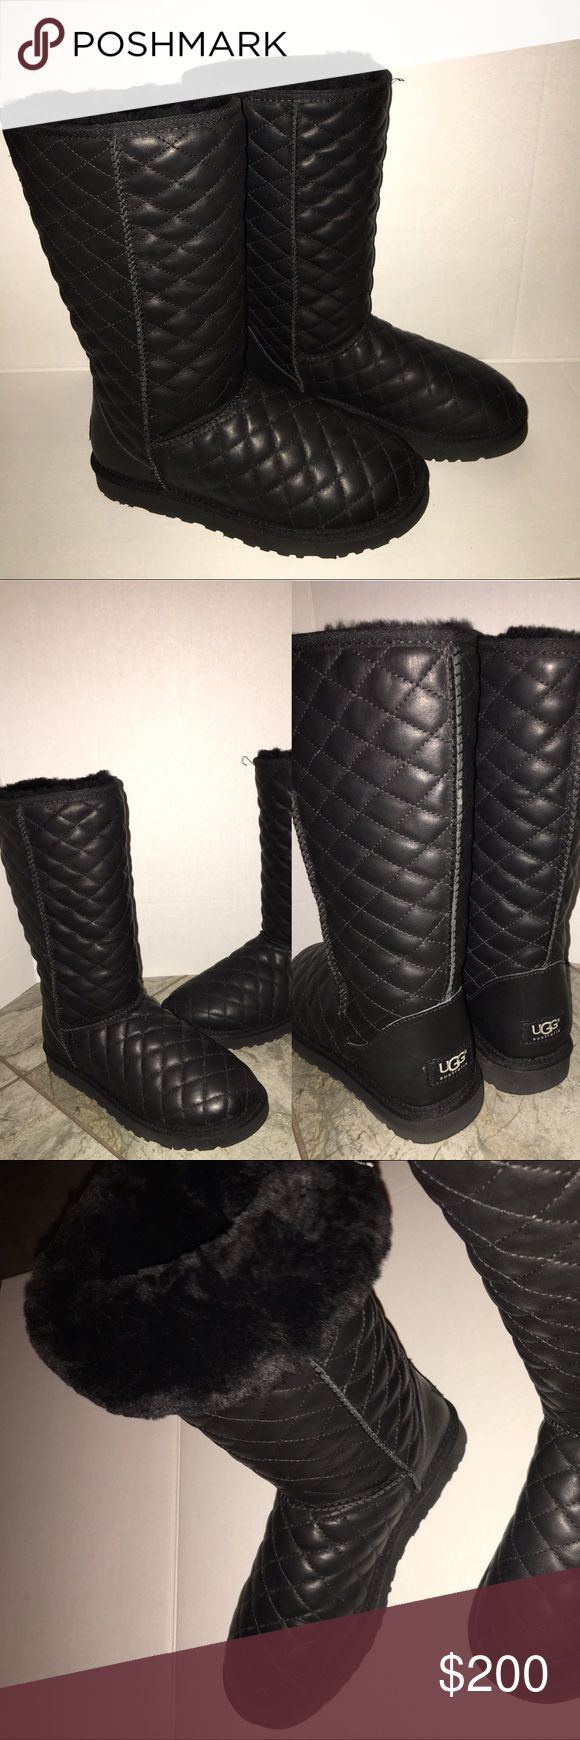 UGG never worn Quilted Leather Boots like new These gorgeous ugg boots originally $300 have never been worn there just like new as shown in pics, perfect to wear this season with a quilted Chanel look they go with anything! Can leave up or fold down however you feel! UGG Shoes